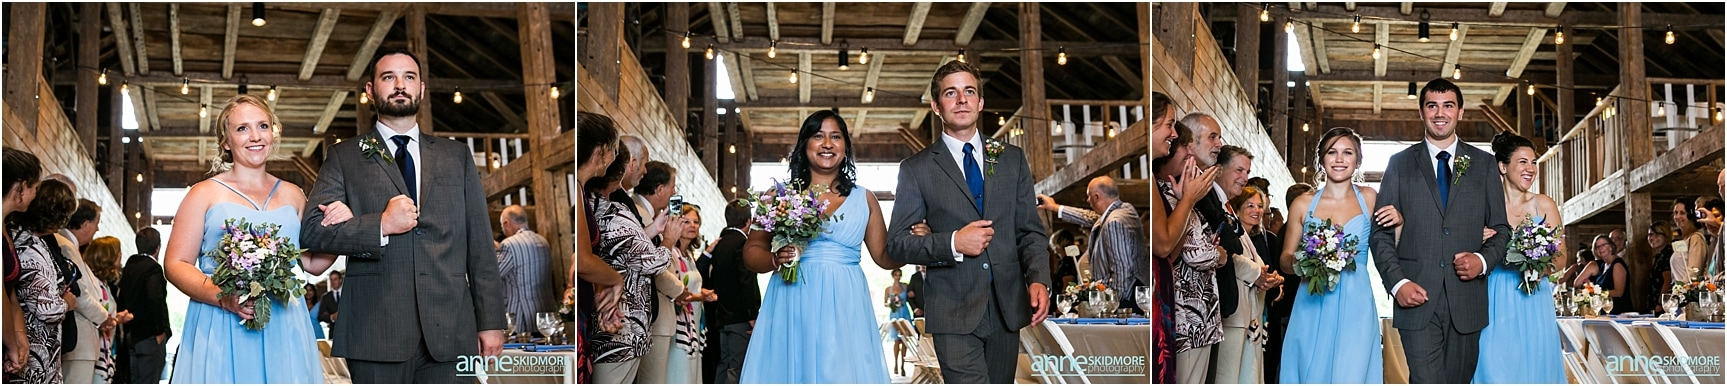 moody_mountain_farm_wedding__039